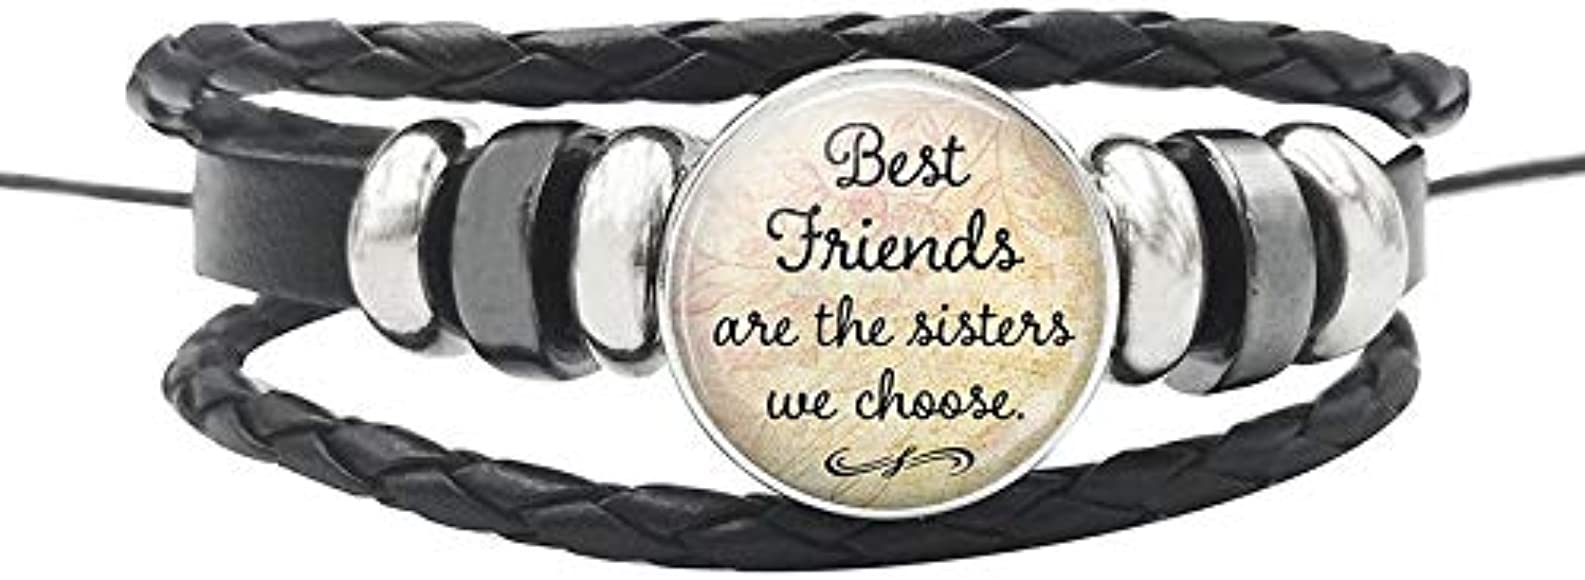 Best Friend Leather Rope Bracelet Inspirational Quote Words Glass Dome Buttons Bangle For Women Men Christmas Gifts Amazon Co Uk Jewellery